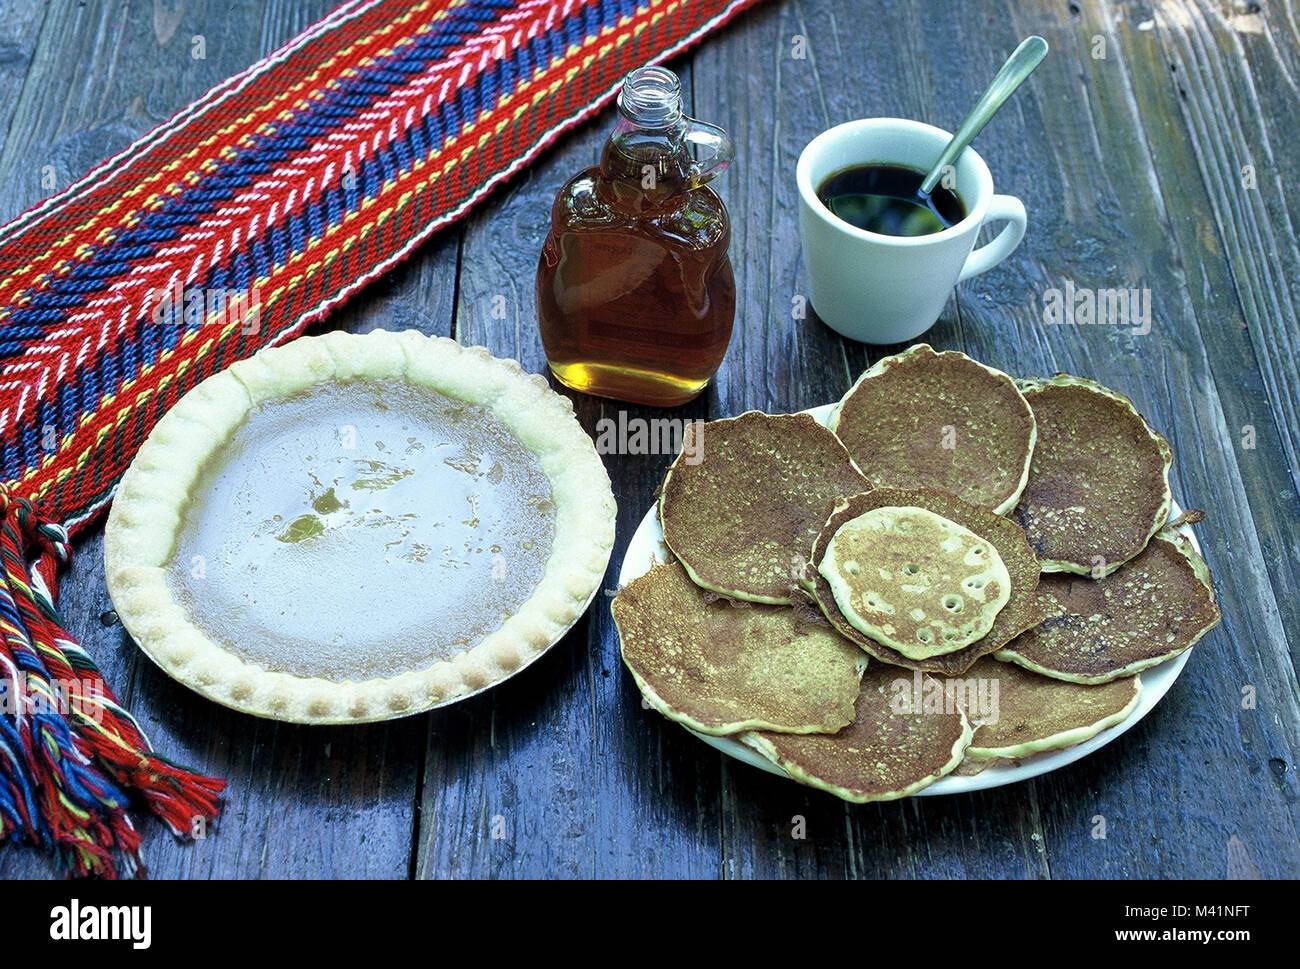 Canada, Quebec Province, traditional dishes, sugar pie, maple syrup and pancakes - Stock Image